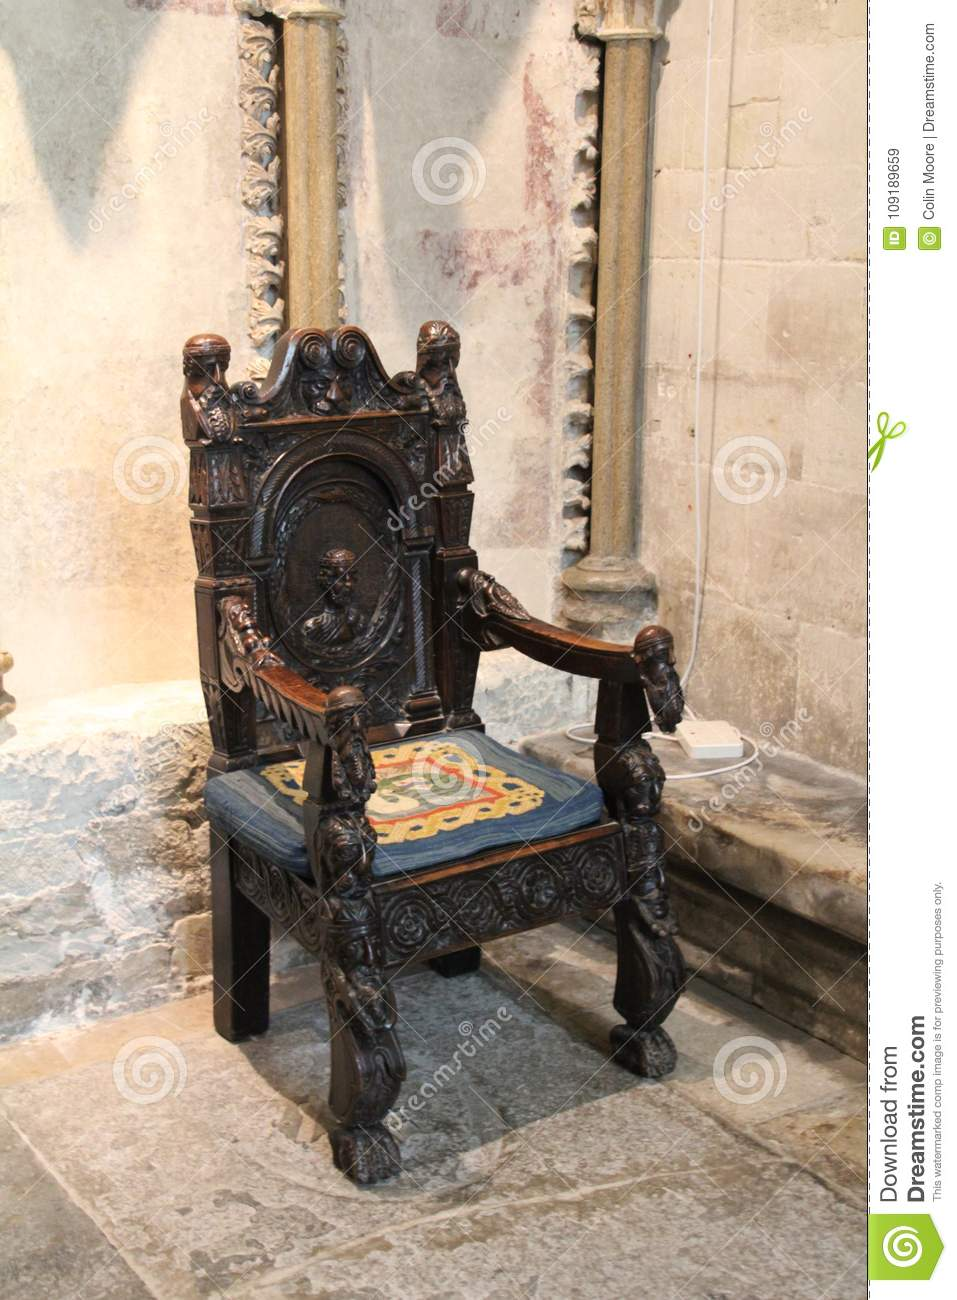 Medieval chair & Medieval chair stock image. Image of nobody cathedral - 109189659